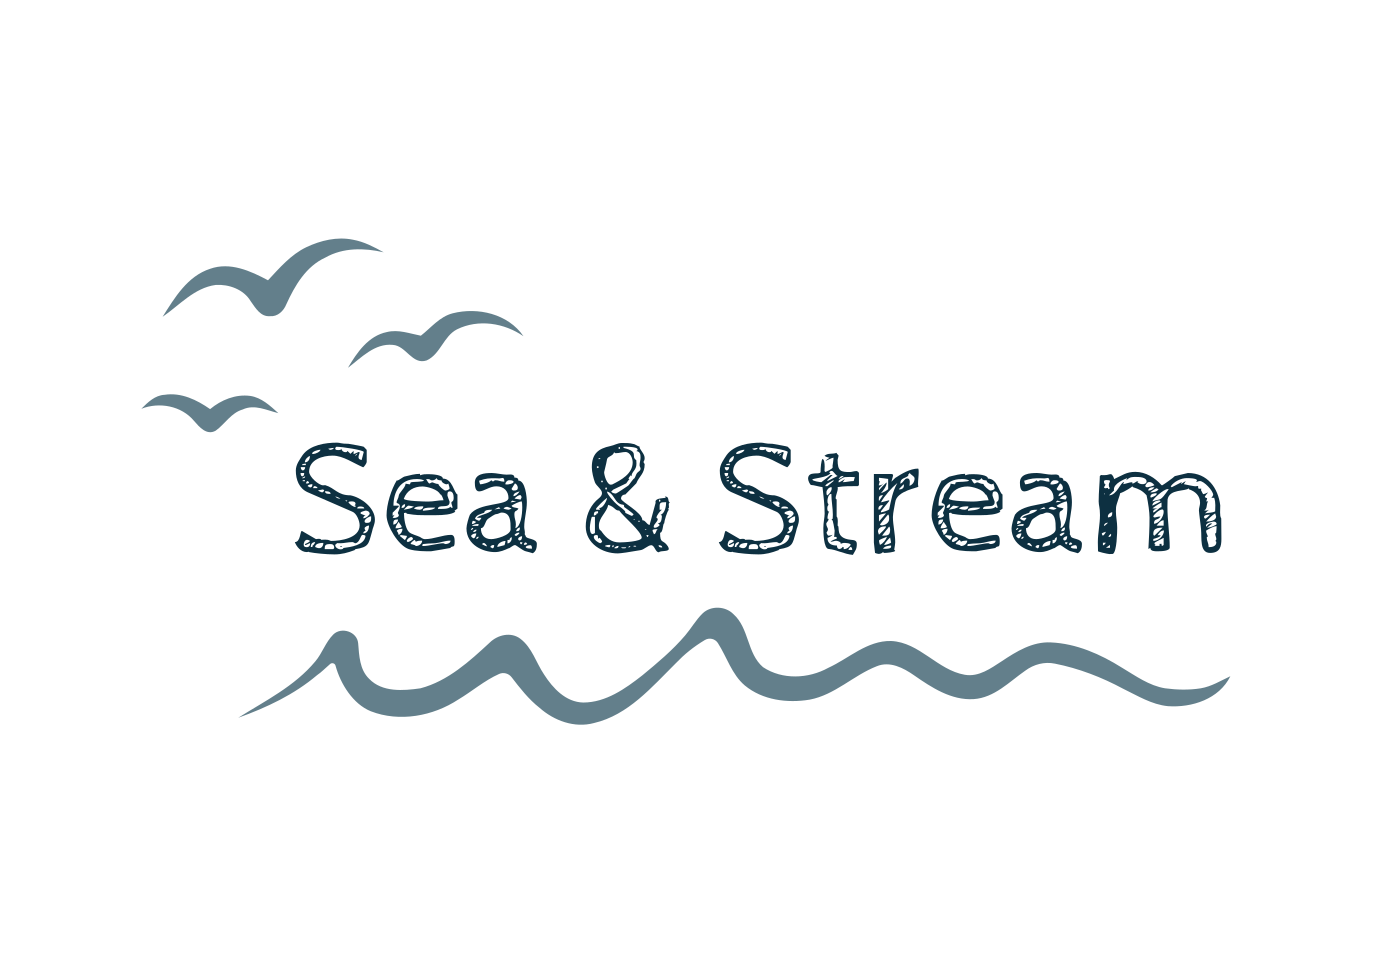 Sea and Stream